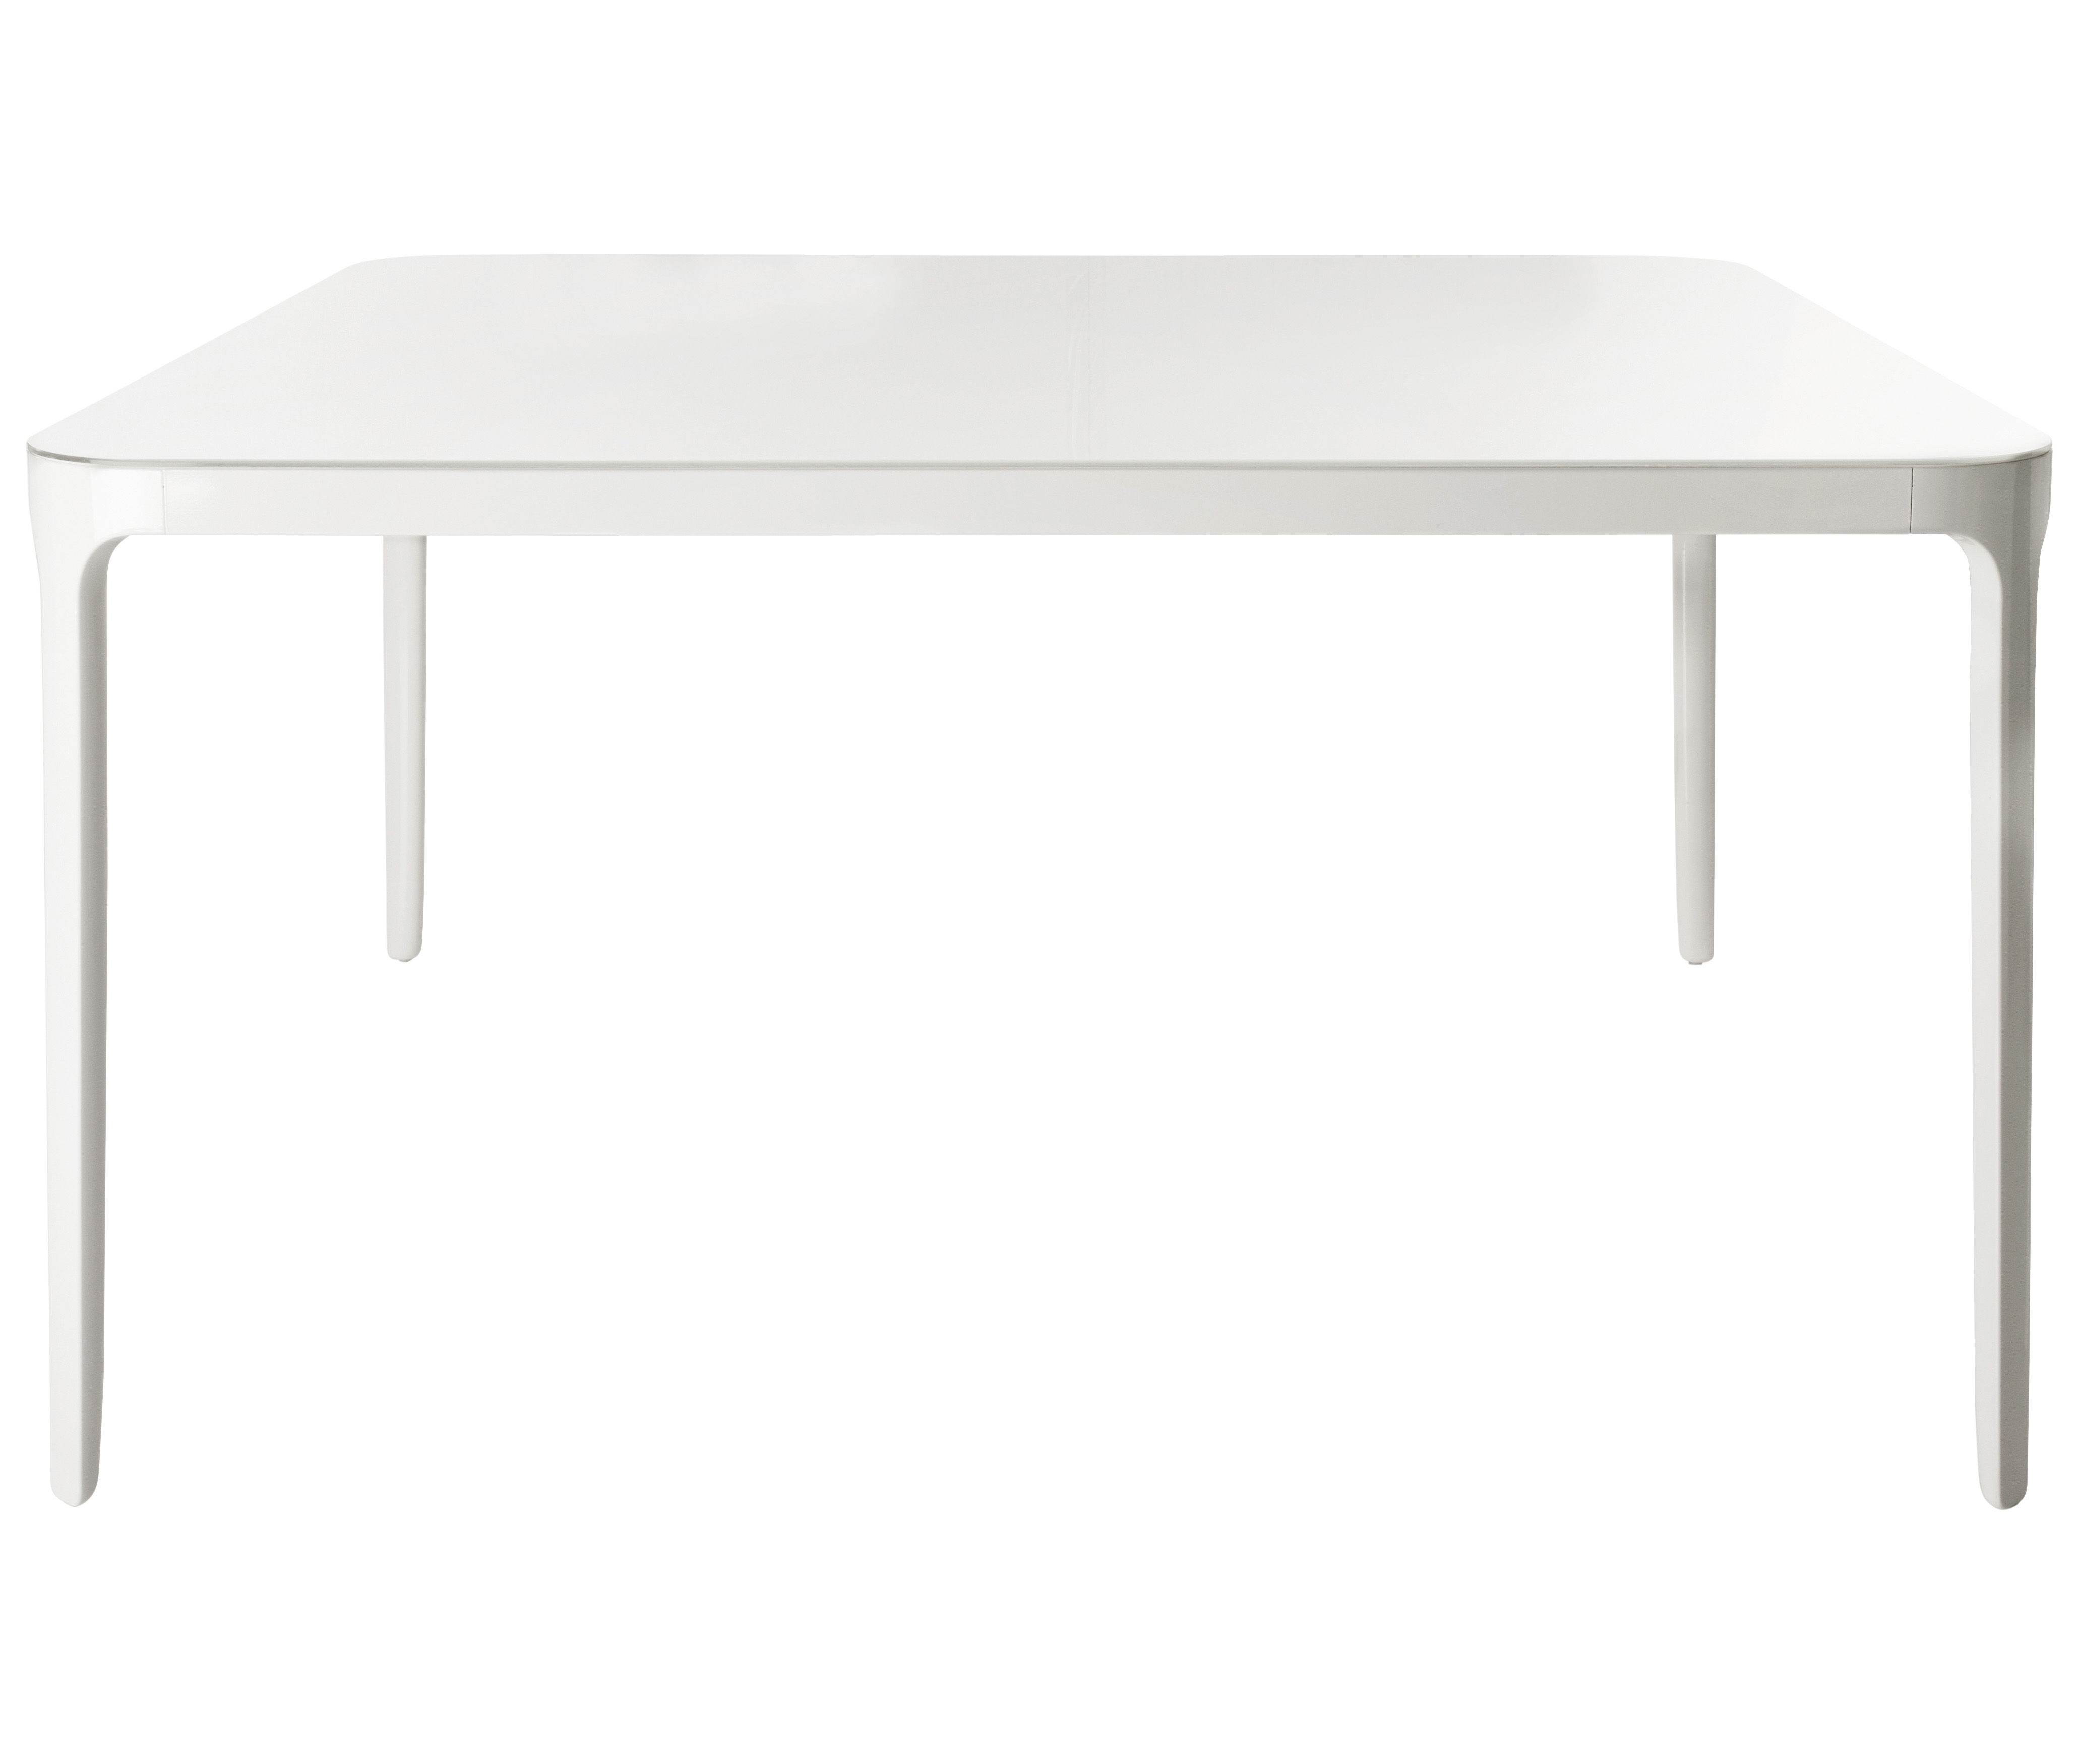 Furniture - Dining Tables - Vanity Extending table - with extension - L 160 à 220 cm by Magis - White - L 160/220 cm - Varnished aluminium, Varnished soak glass